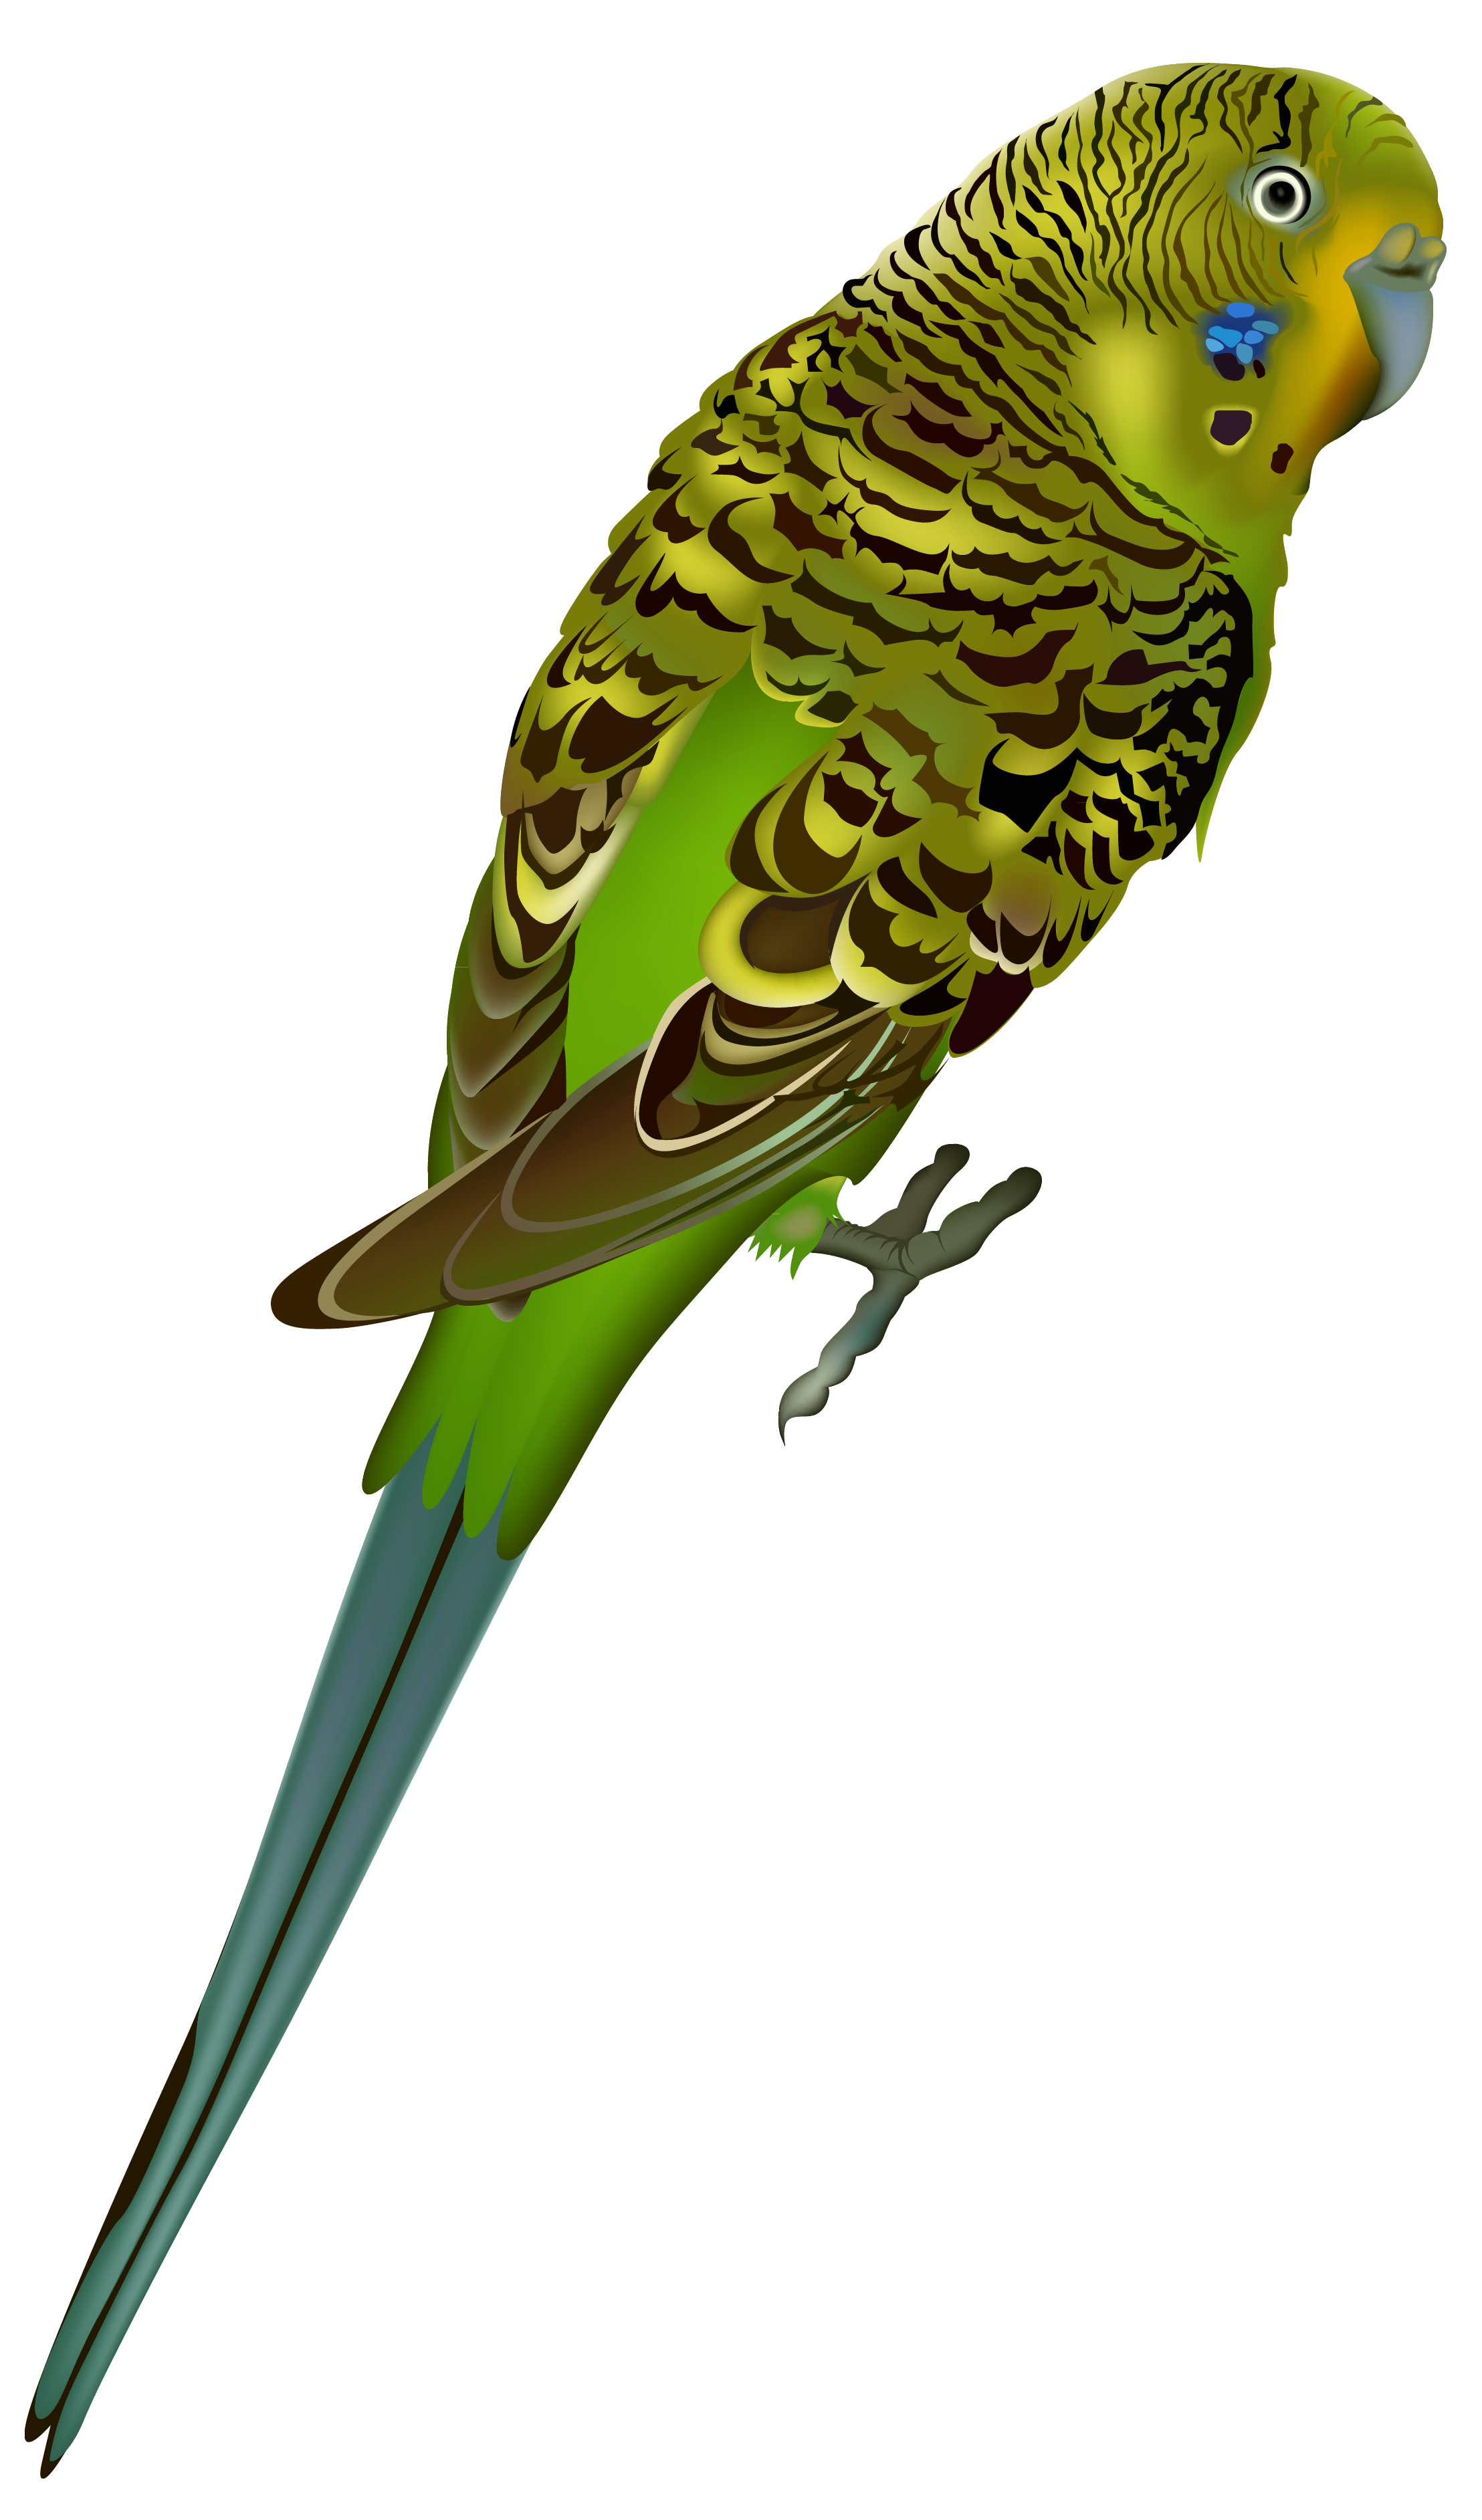 Budgie clipart #1, Download drawings